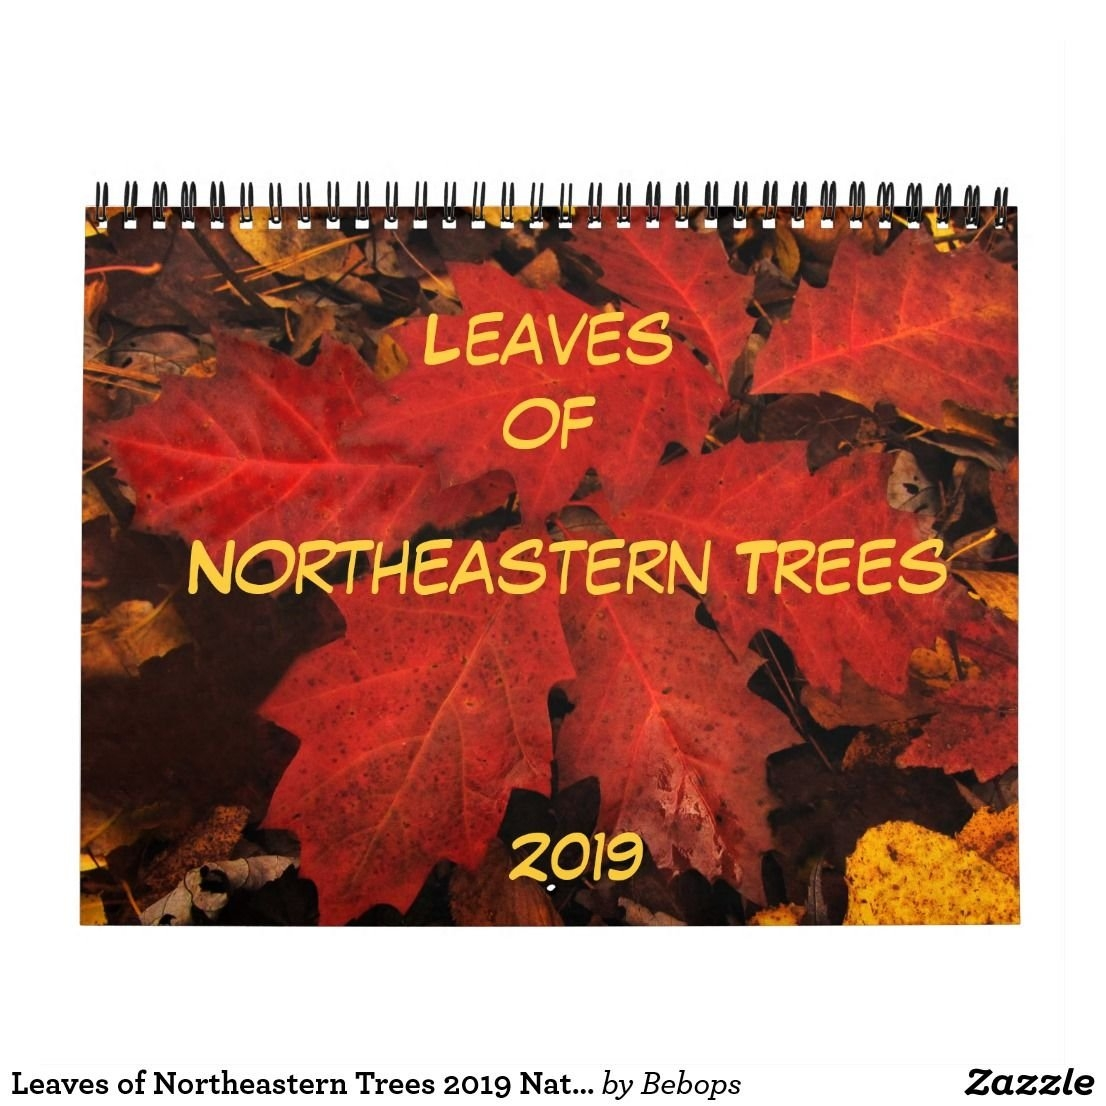 Leaves Of Northeastern Trees 2019 Nature Calendar | 2019 Calendars Calendar 2019 Northeastern